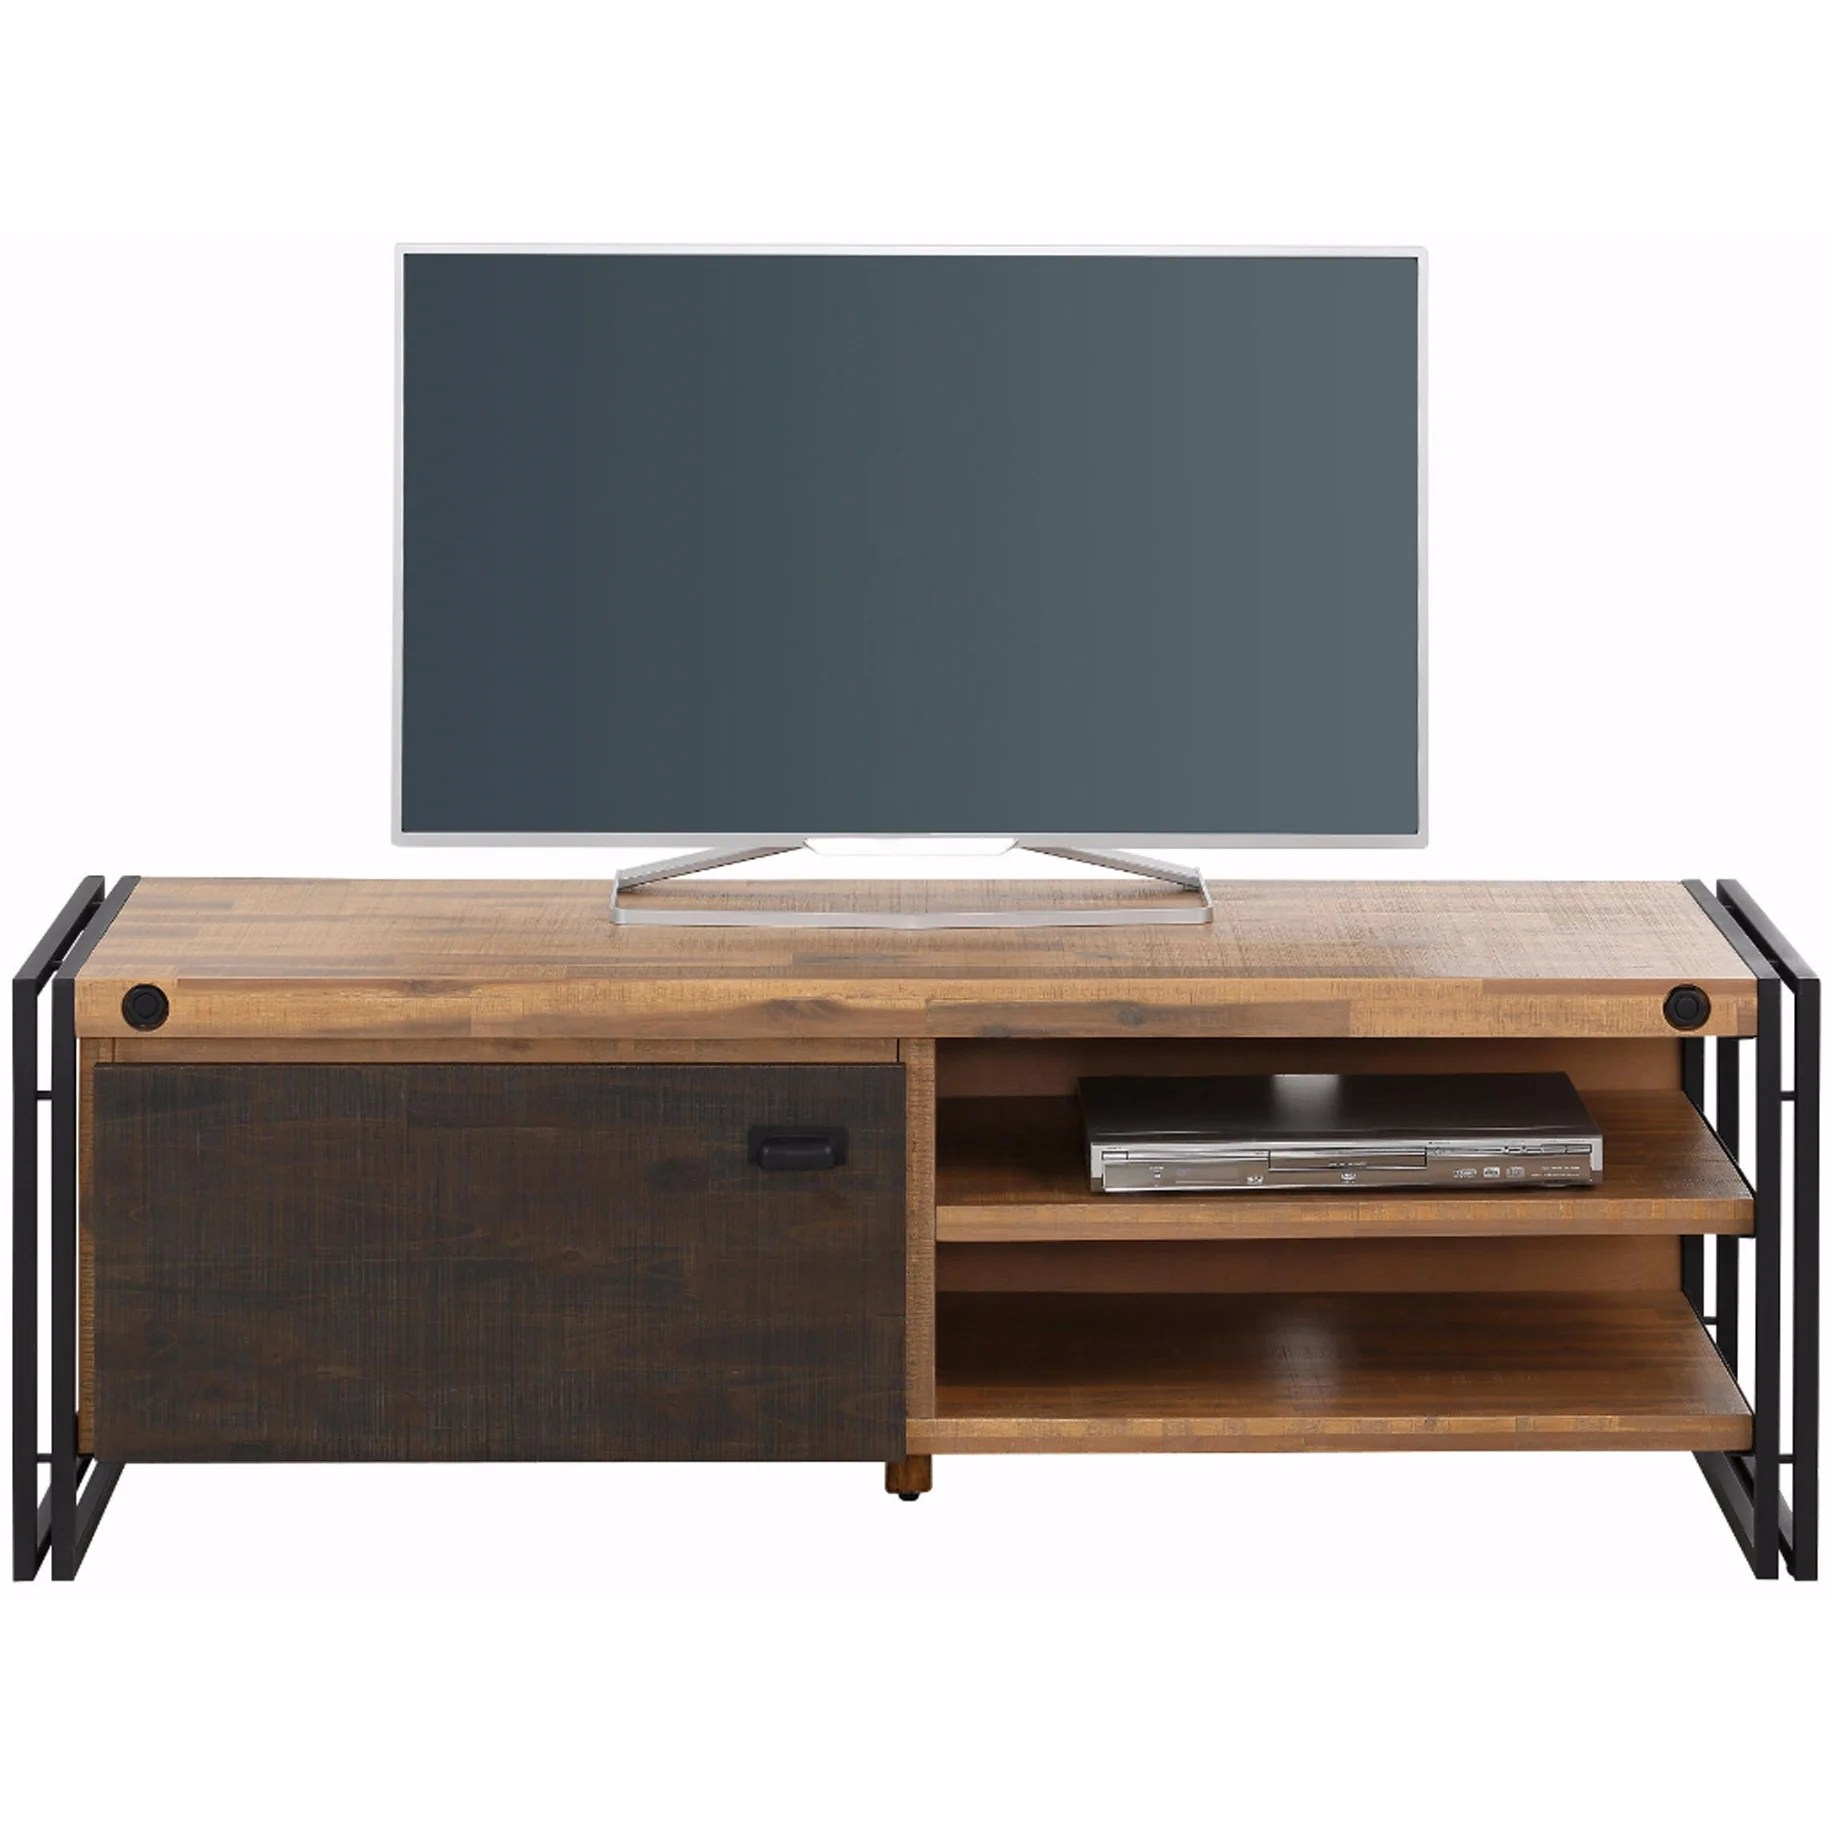 Tv Lowboard Industriedesign Katashi Acacia Wood And Metal 1 Door Tv Lowboard Entertainment Center 52 Inches